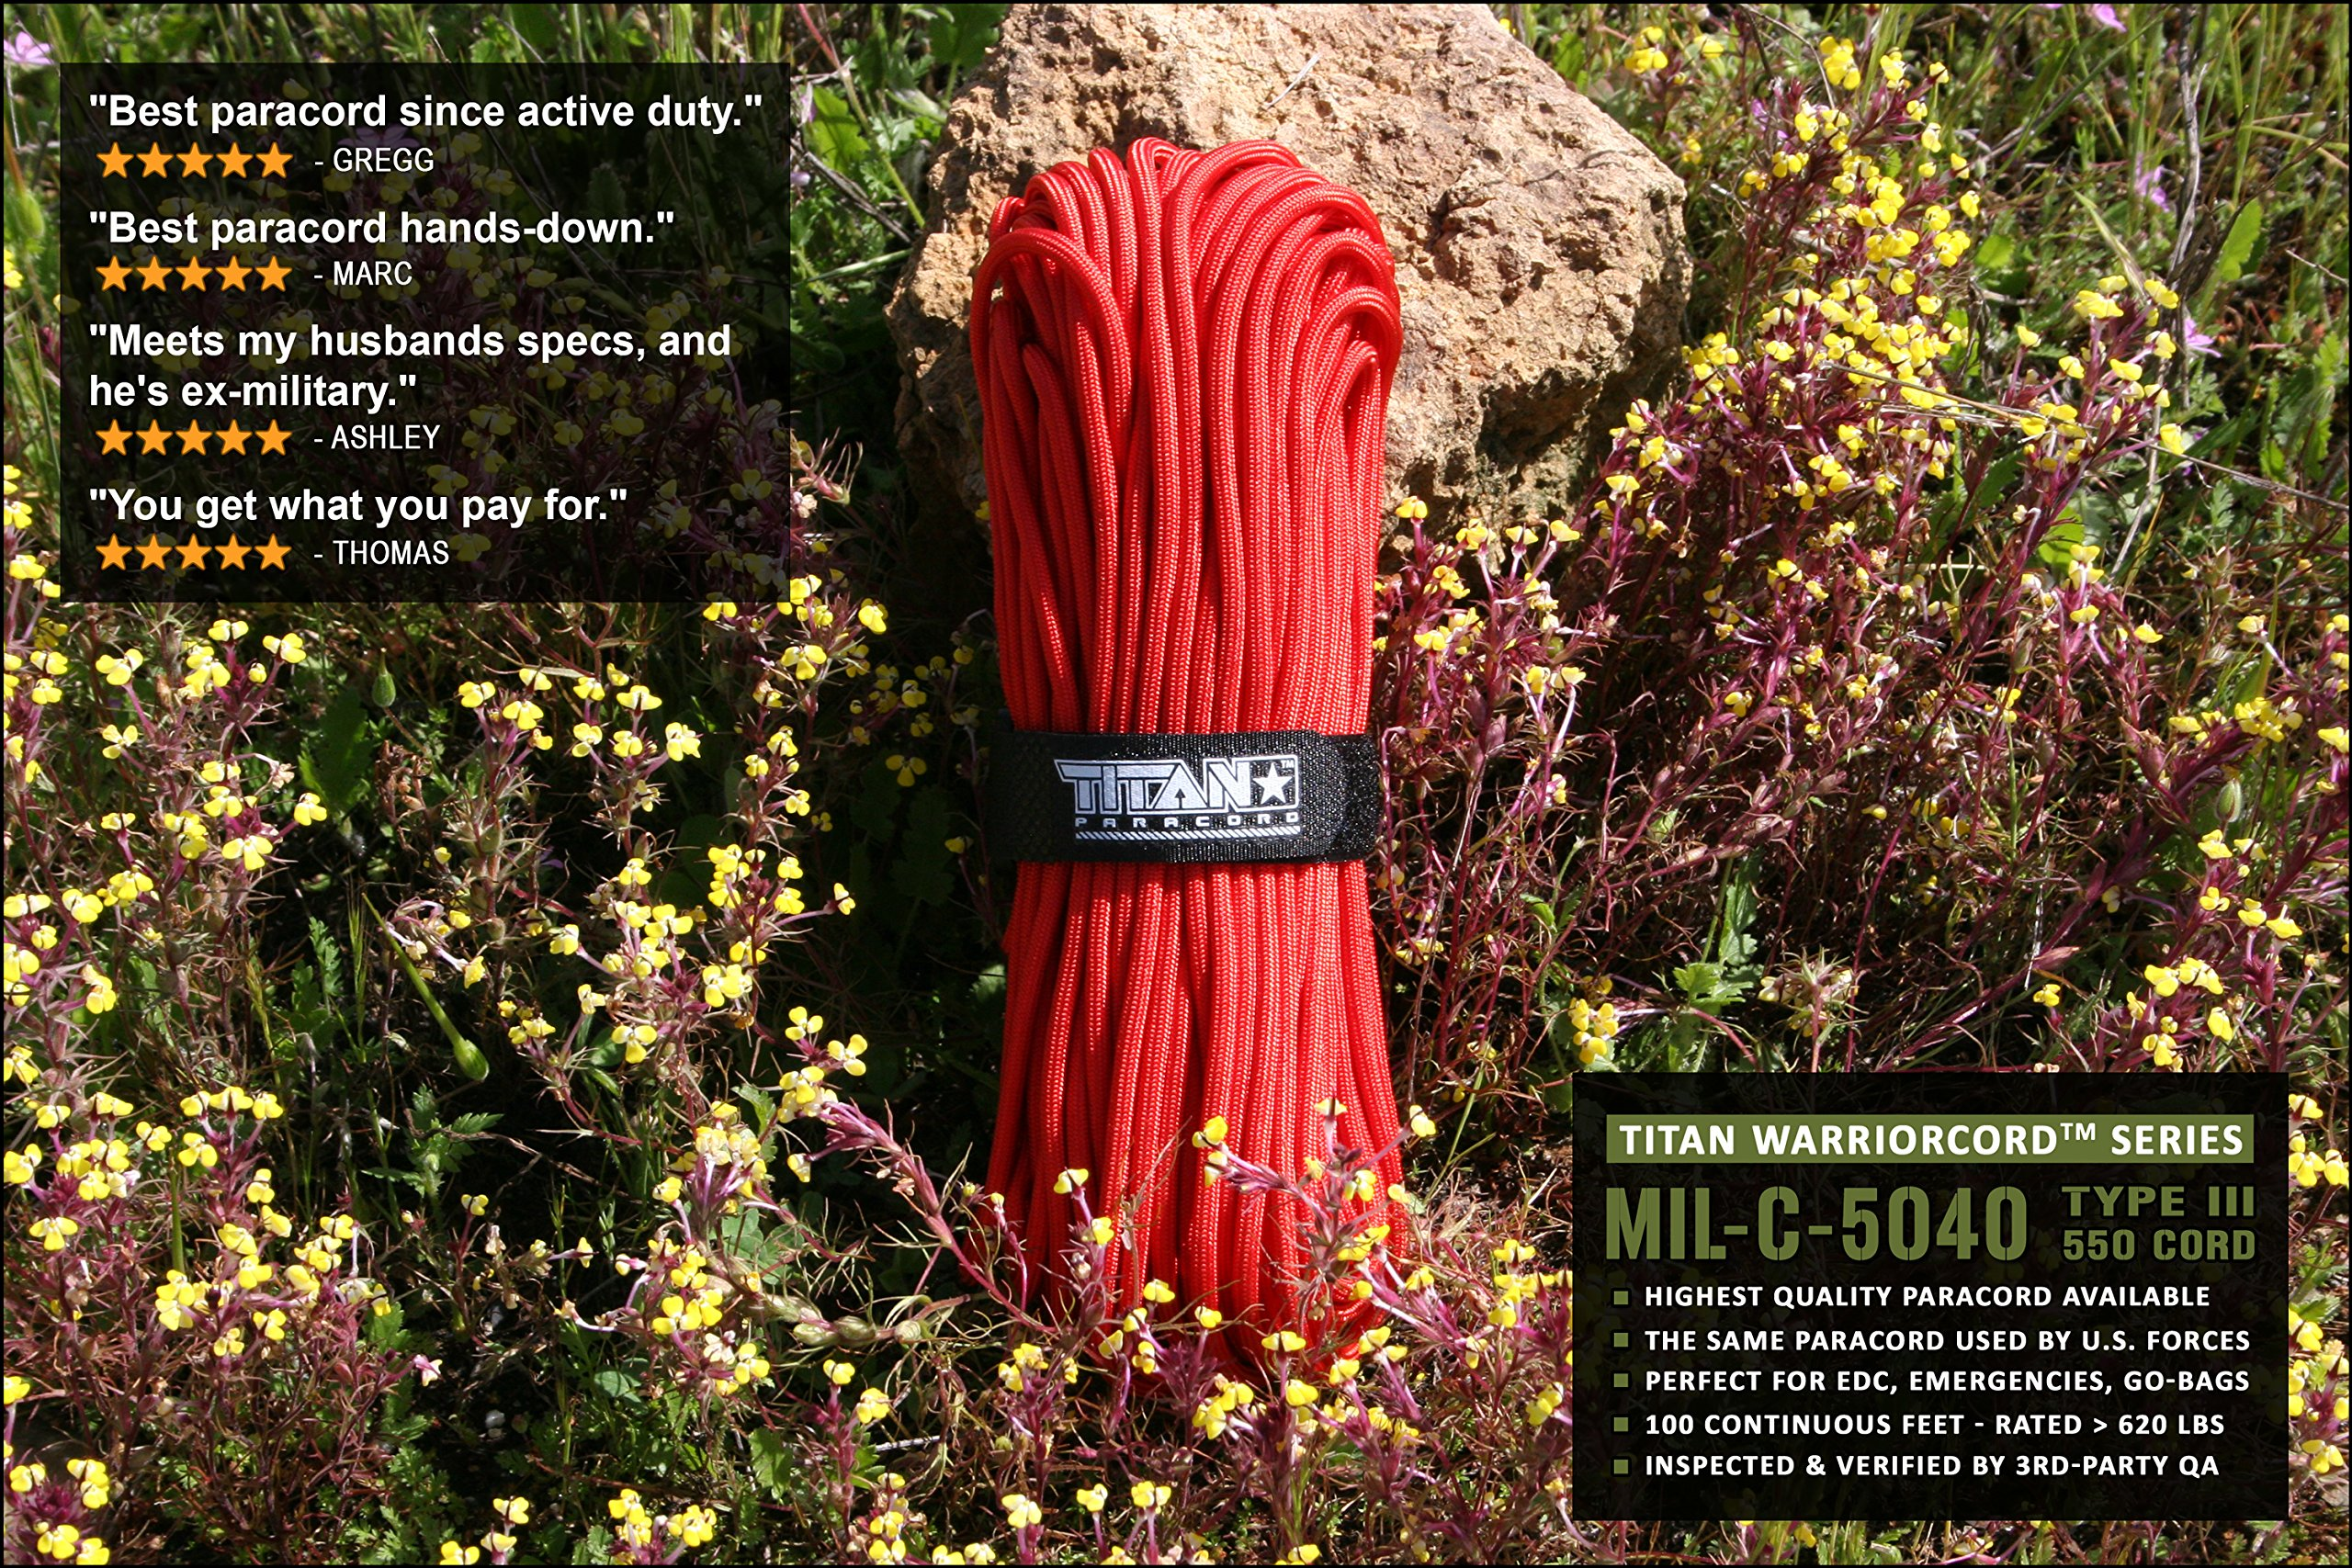 TITAN WarriorCord | RED | 103 CONTINUOUS FEET | Exceeds Authentic MIL-C-5040, Type III 550 Paracord Standards. 7 Strand, 5/32'' (4mm) Diameter, Military Parachute Cord. by Titan Paracord (Image #3)